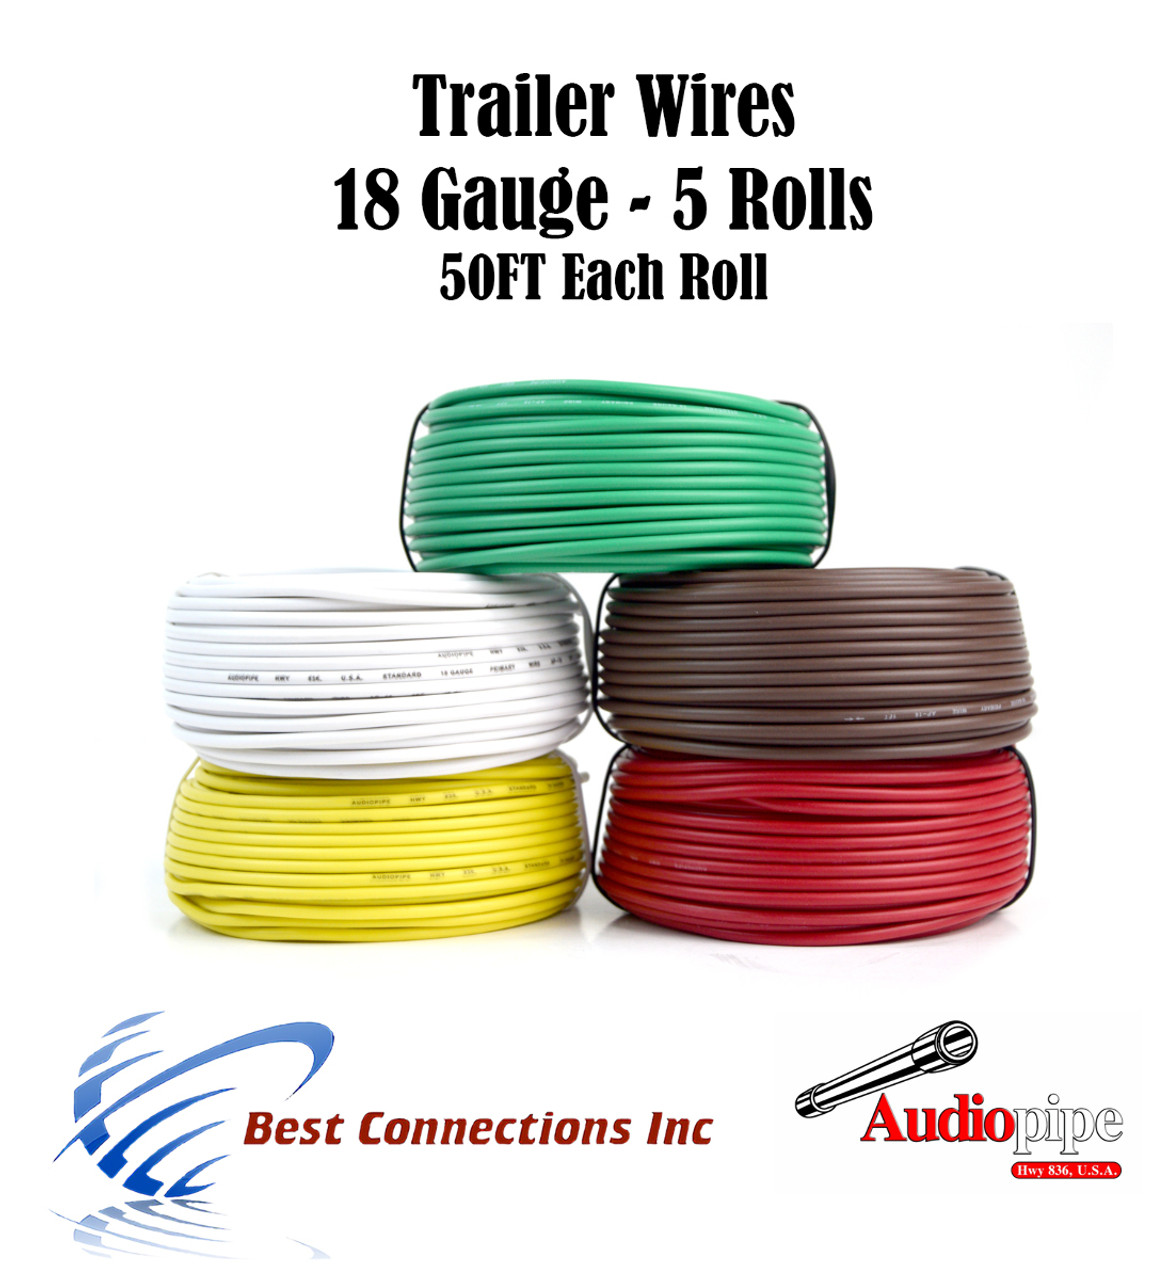 5 Way Trailer Wire Light Cable for Harness LED 50ft Each Roll 18 ...